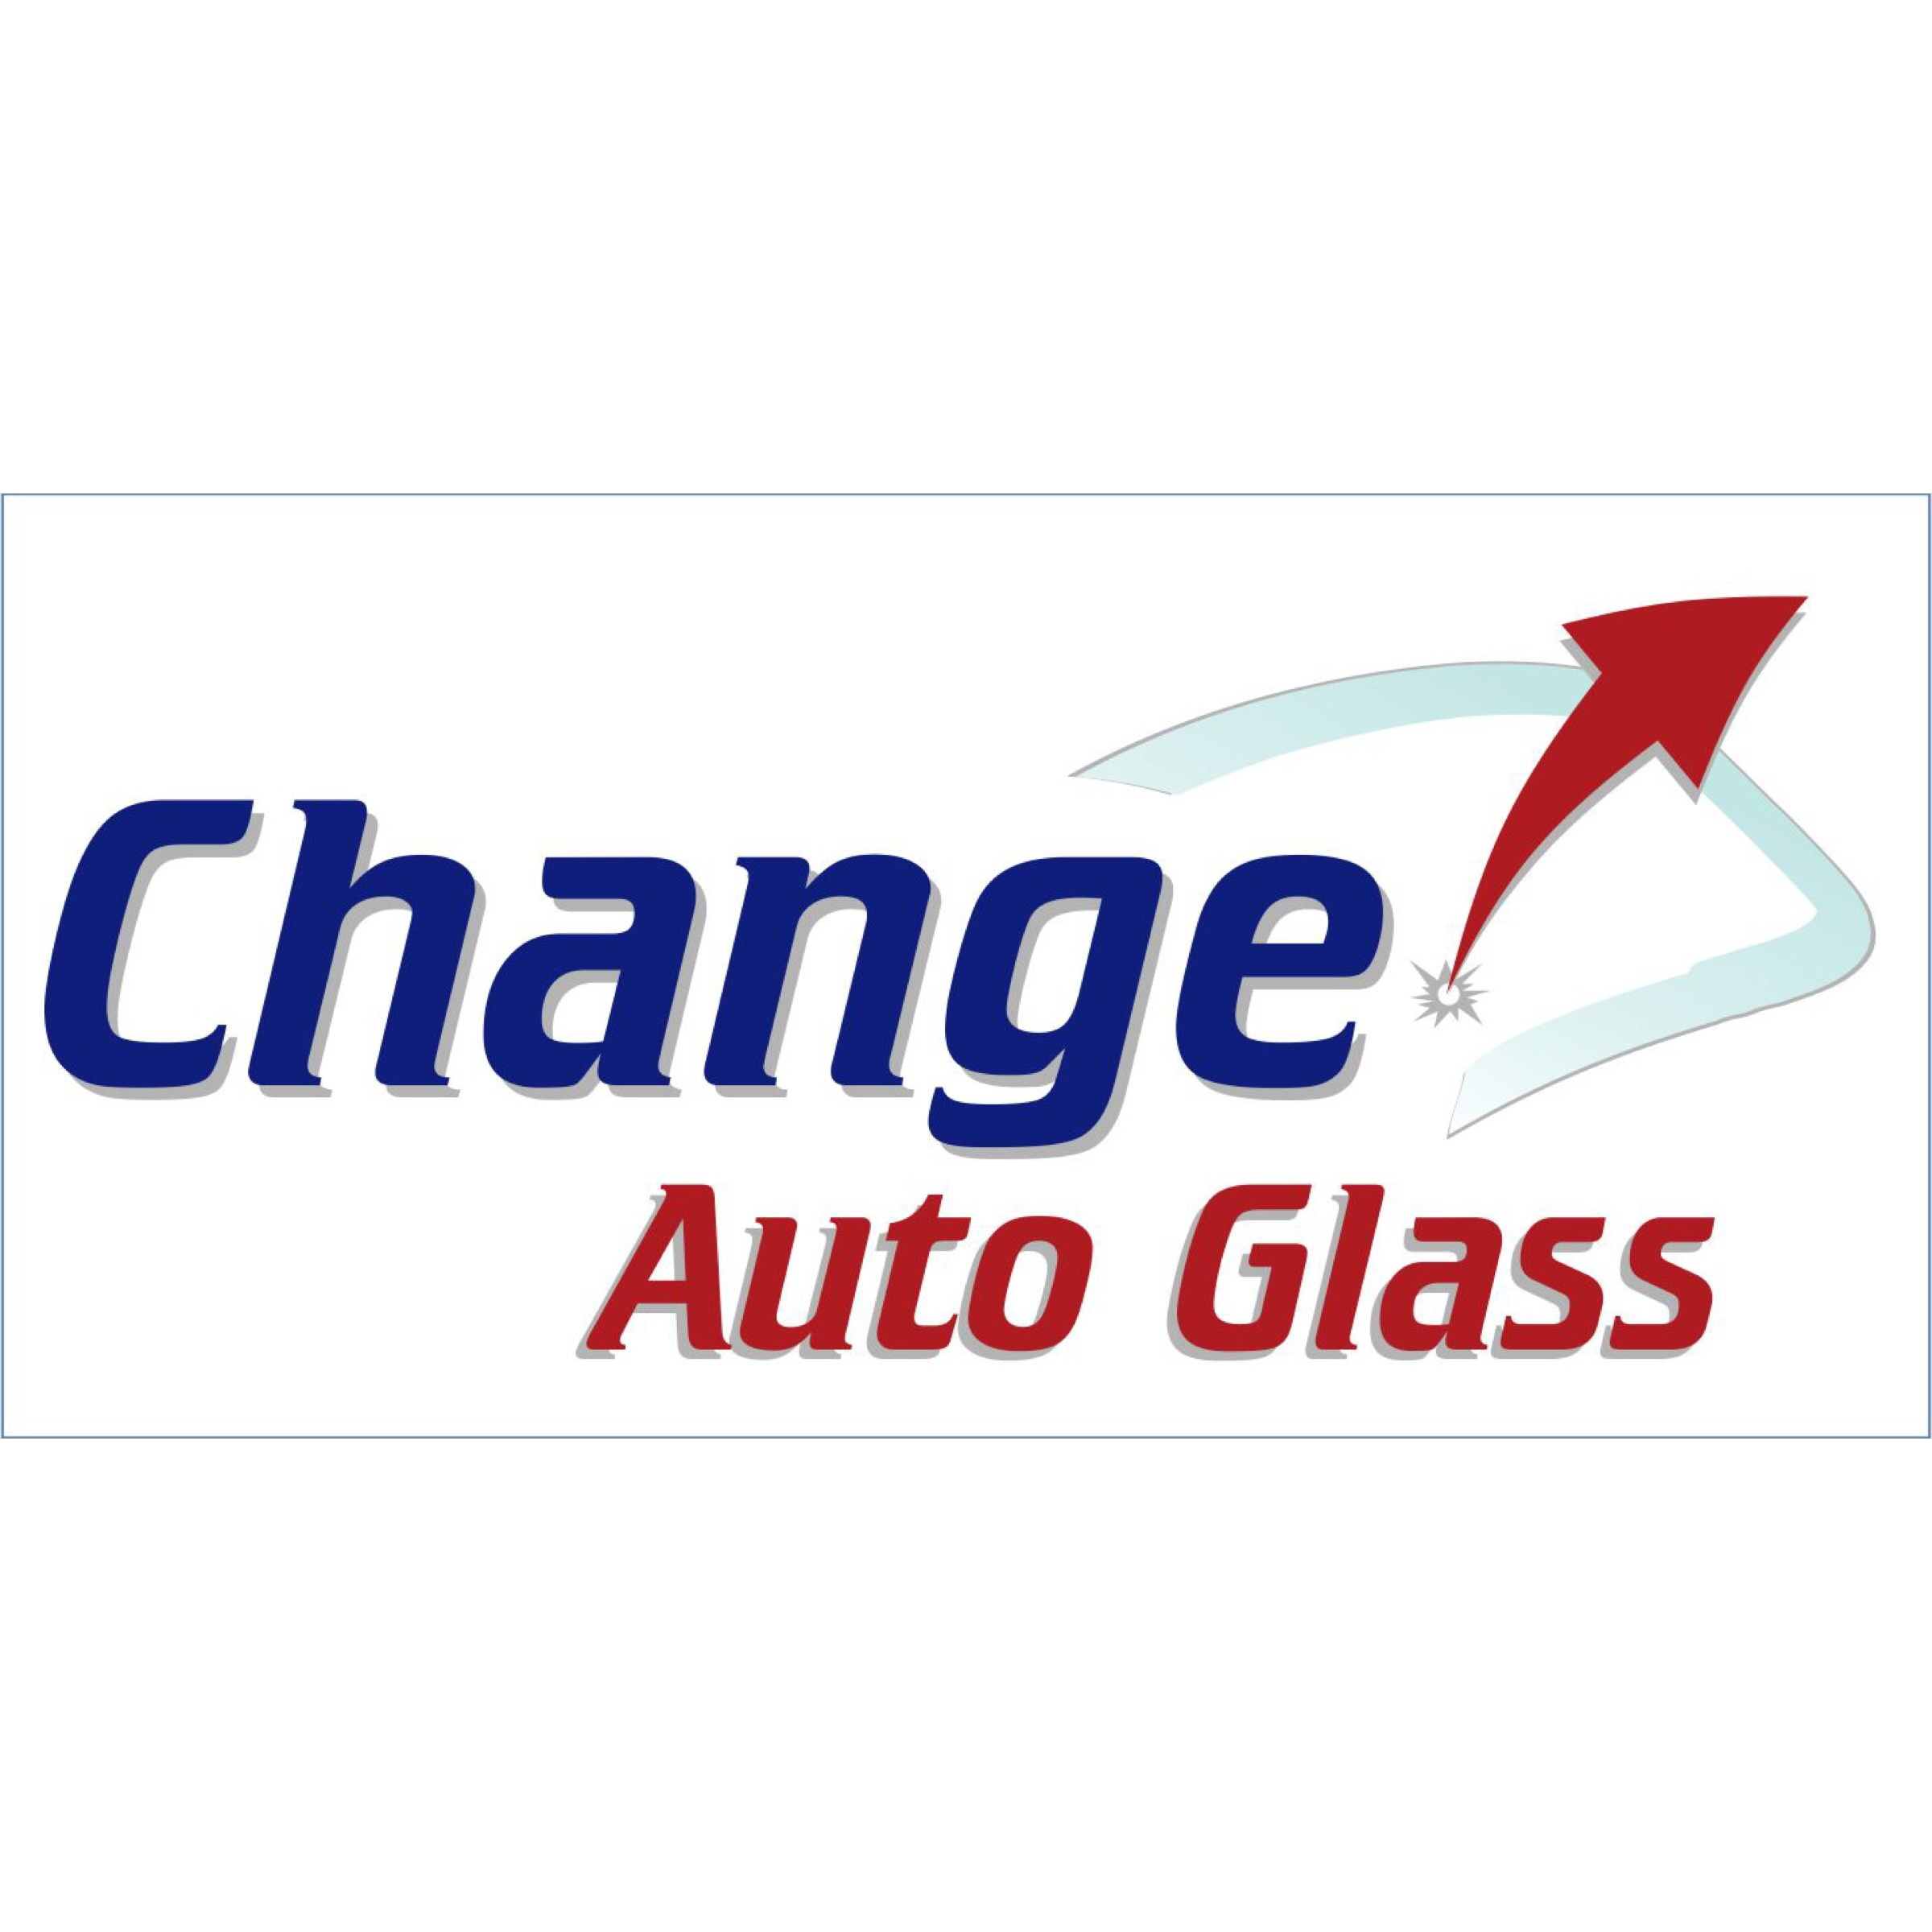 Change Auto Glass Shop in Fremont Ca with 5 Star Reviews changeautogalss.com